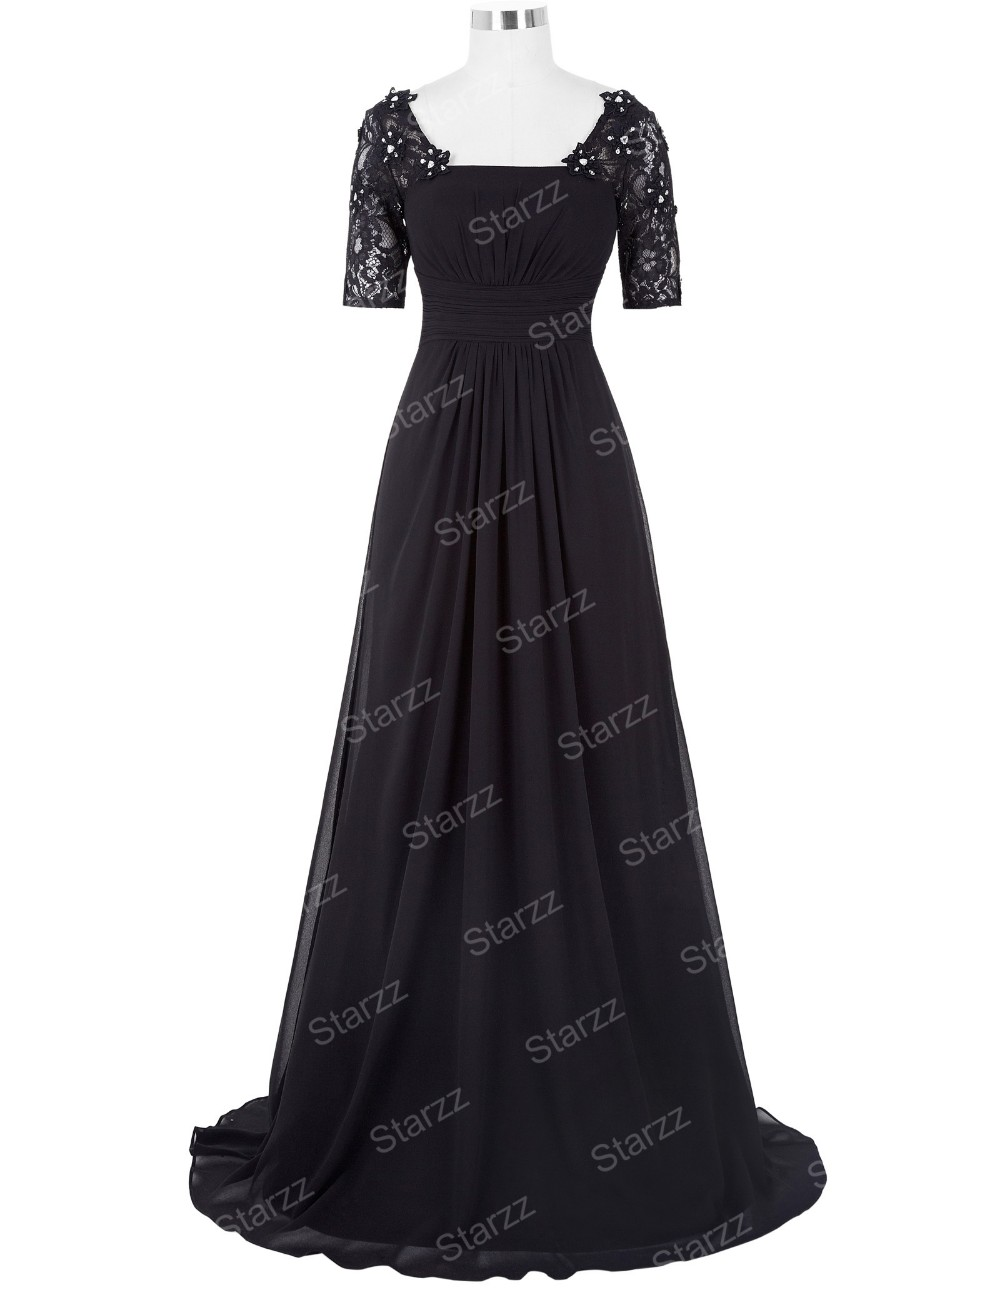 Kate Kasin Ladies Short Sleeve Square Neck Black Long Chiffon Ball Gown Evening Prom Party Dress 8 Size US 2~16 KK000152-1